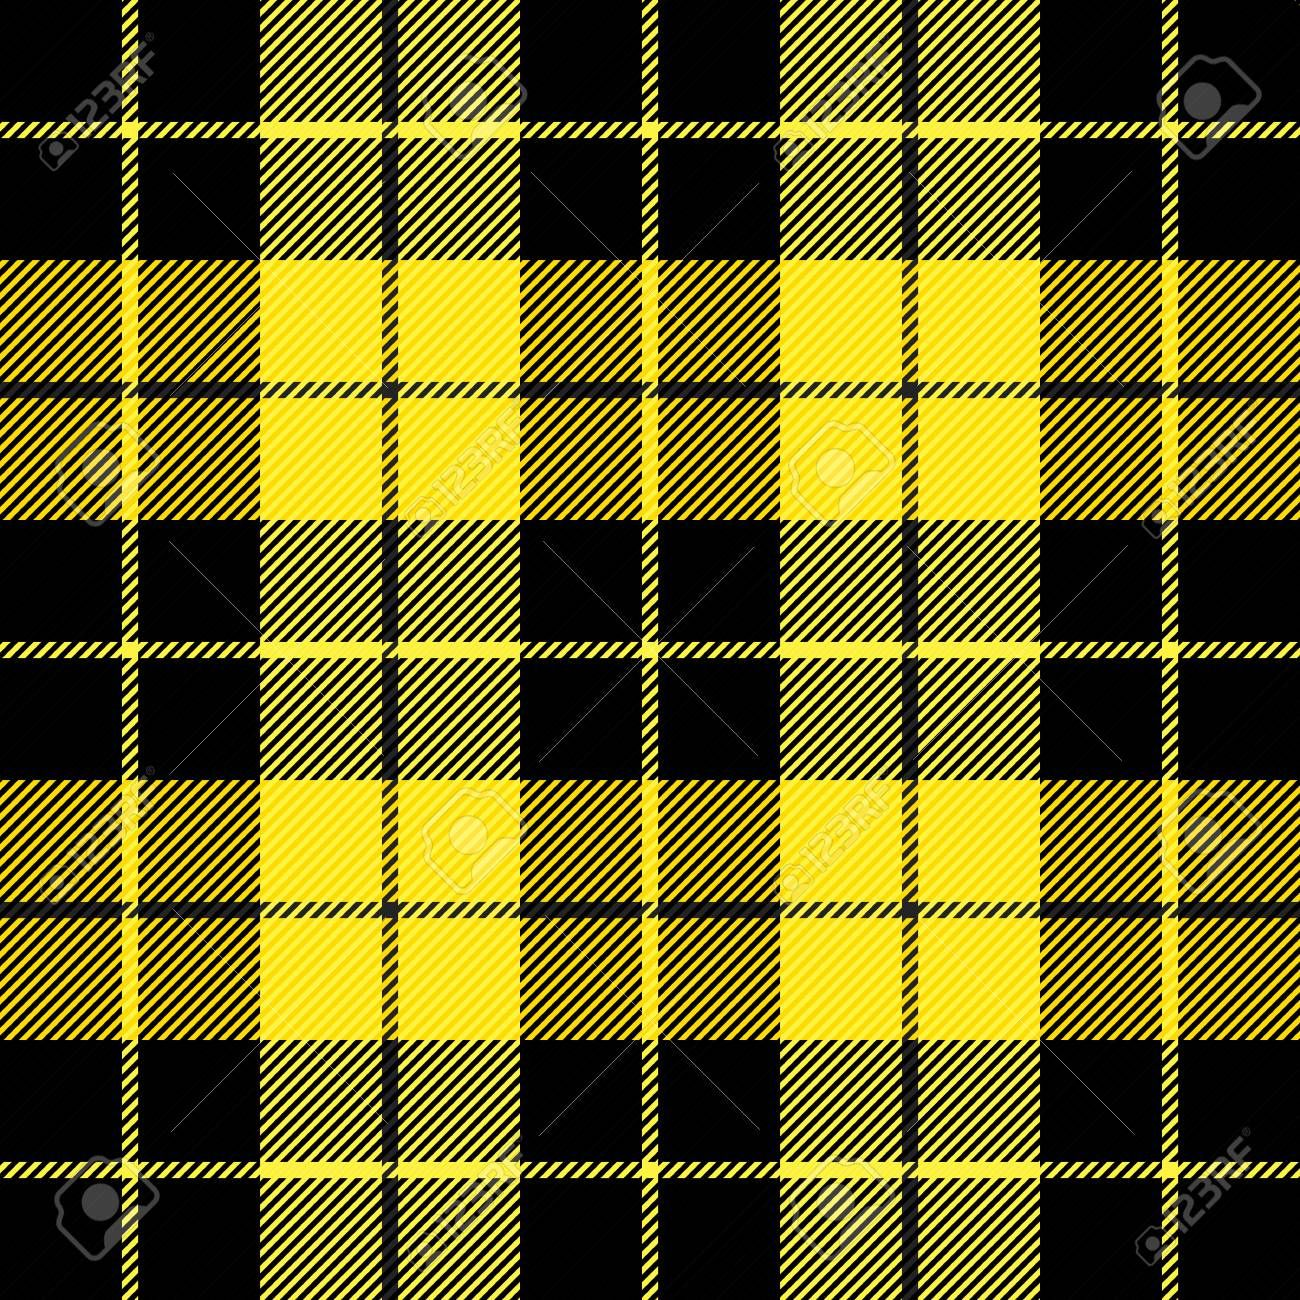 Wallace tartan plaid. Scottish pattern in black and yellow